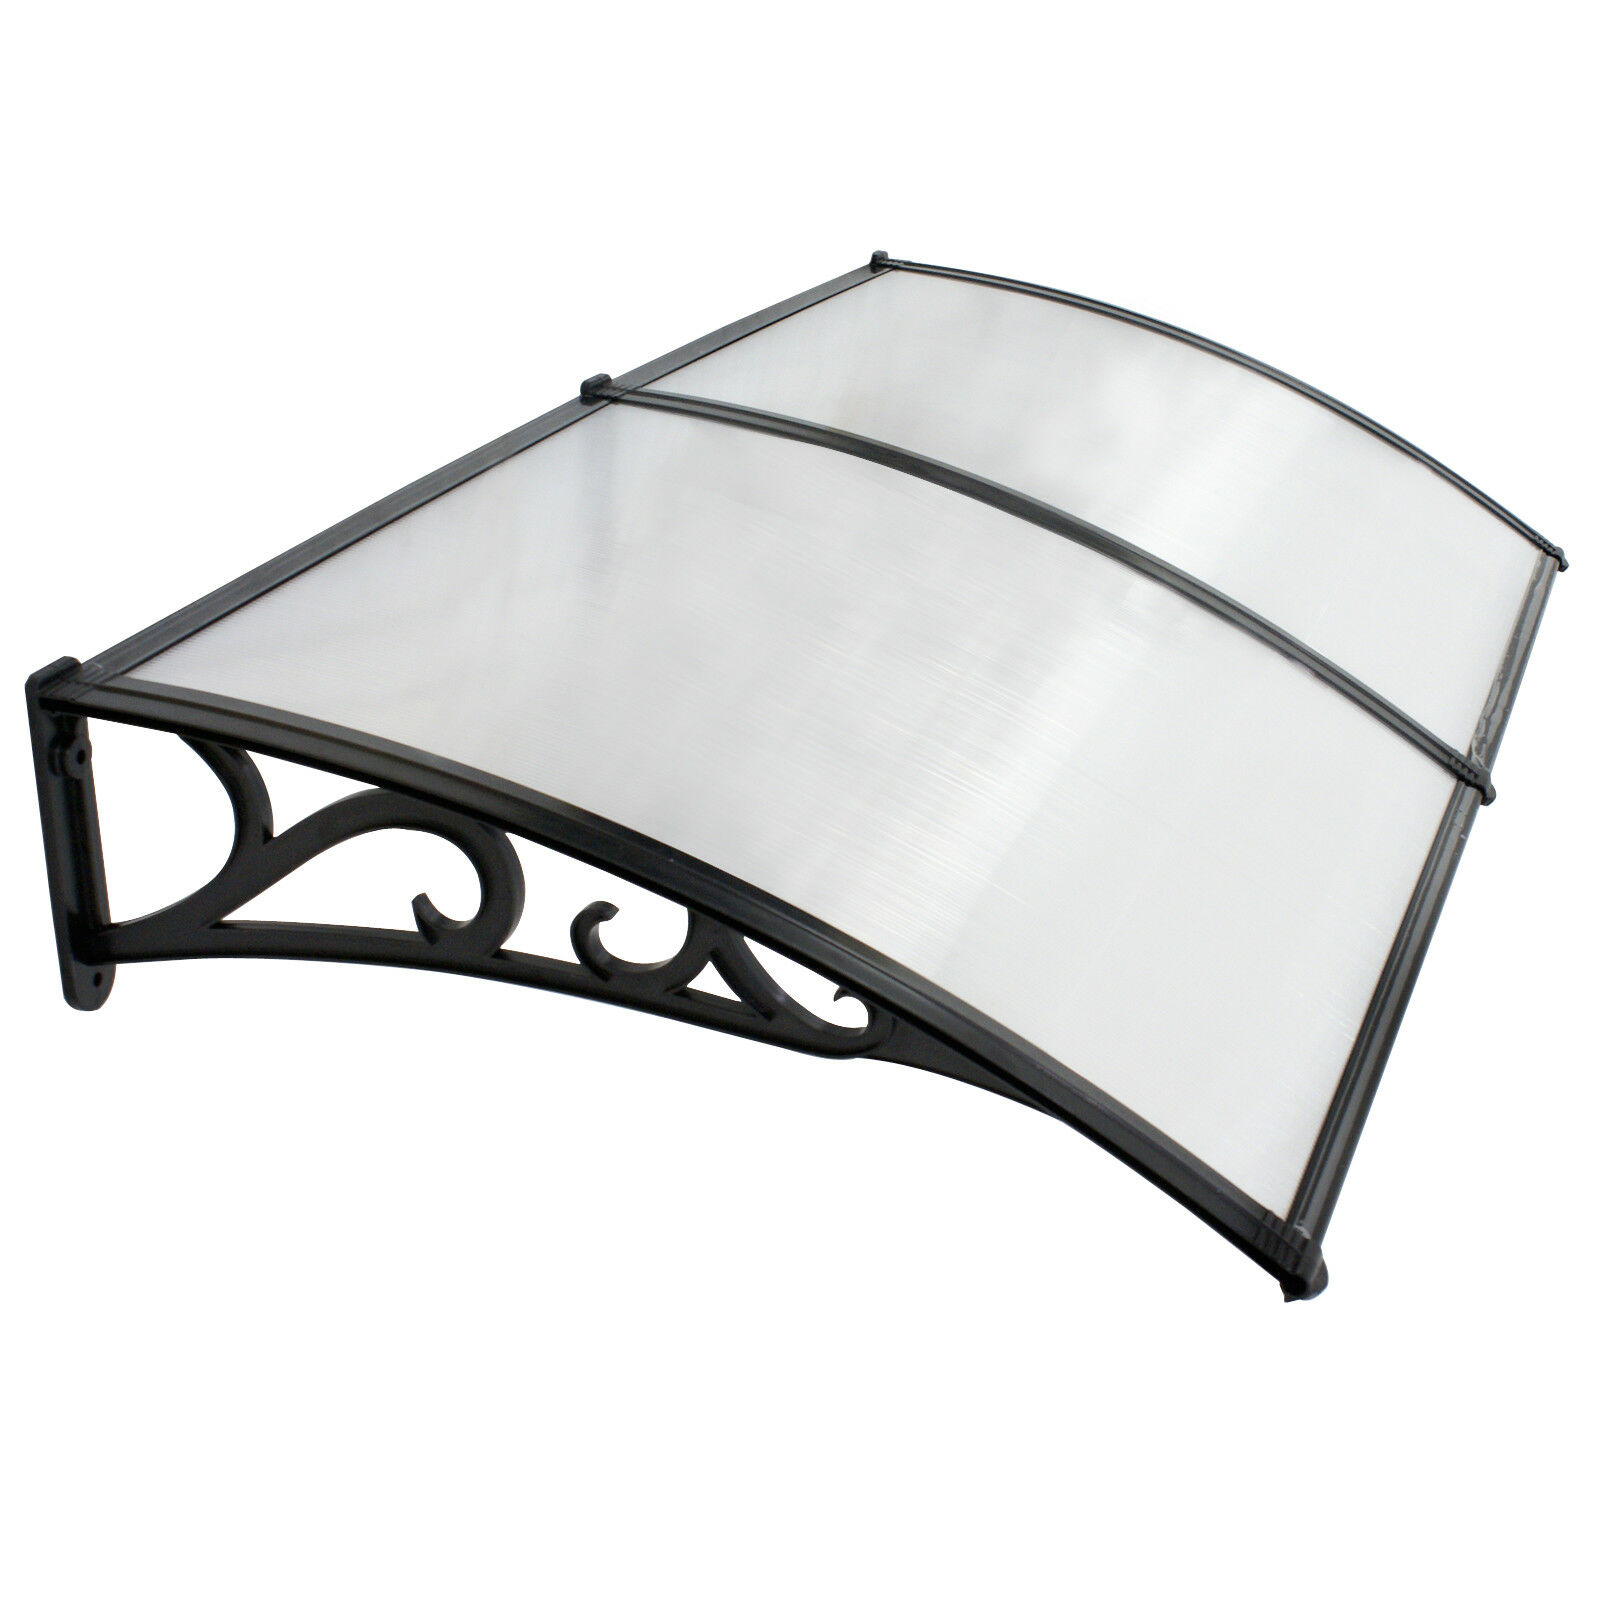 40″ x 80″ Outdoor Polycarbonate Front Door Window Awning Patio Cover Canopy Awning & Canopy Parts